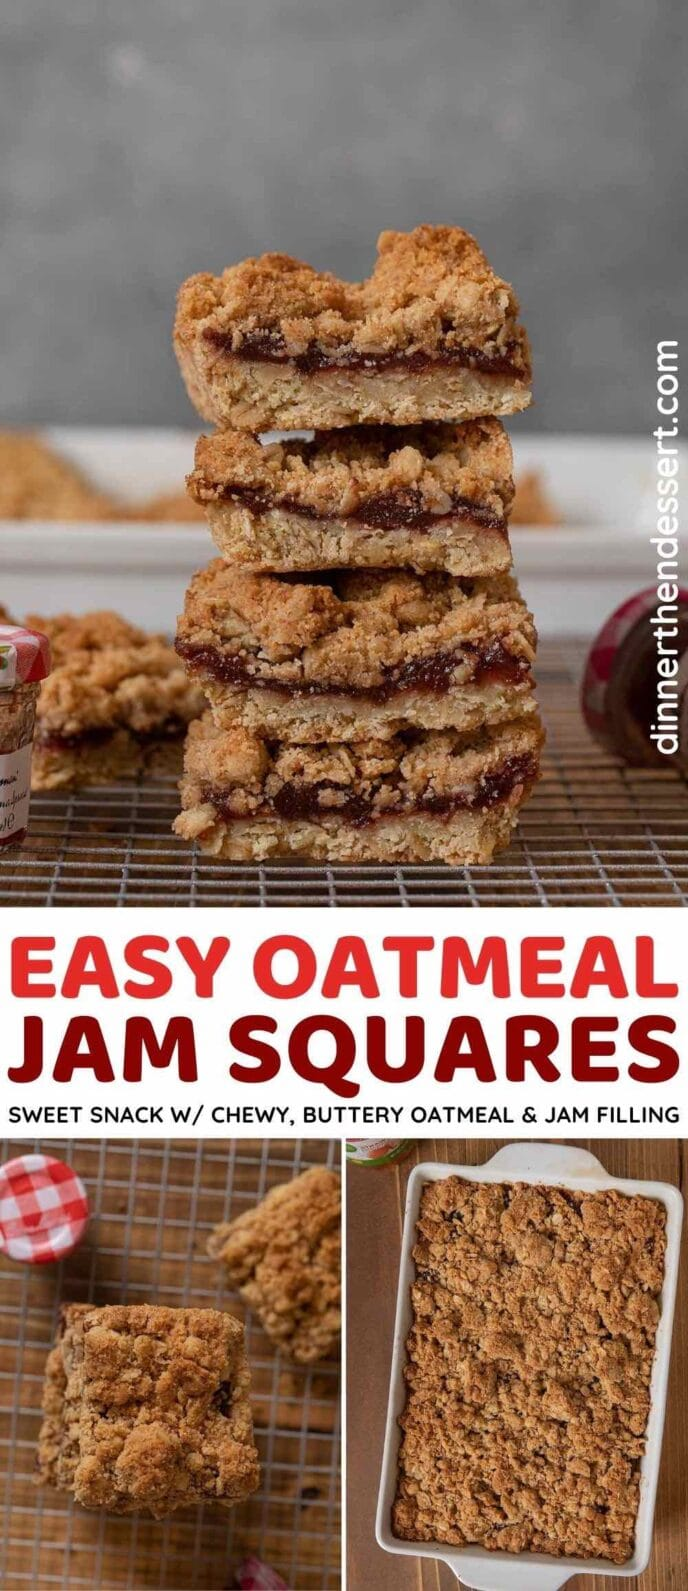 Oatmeal Jam Squares collage